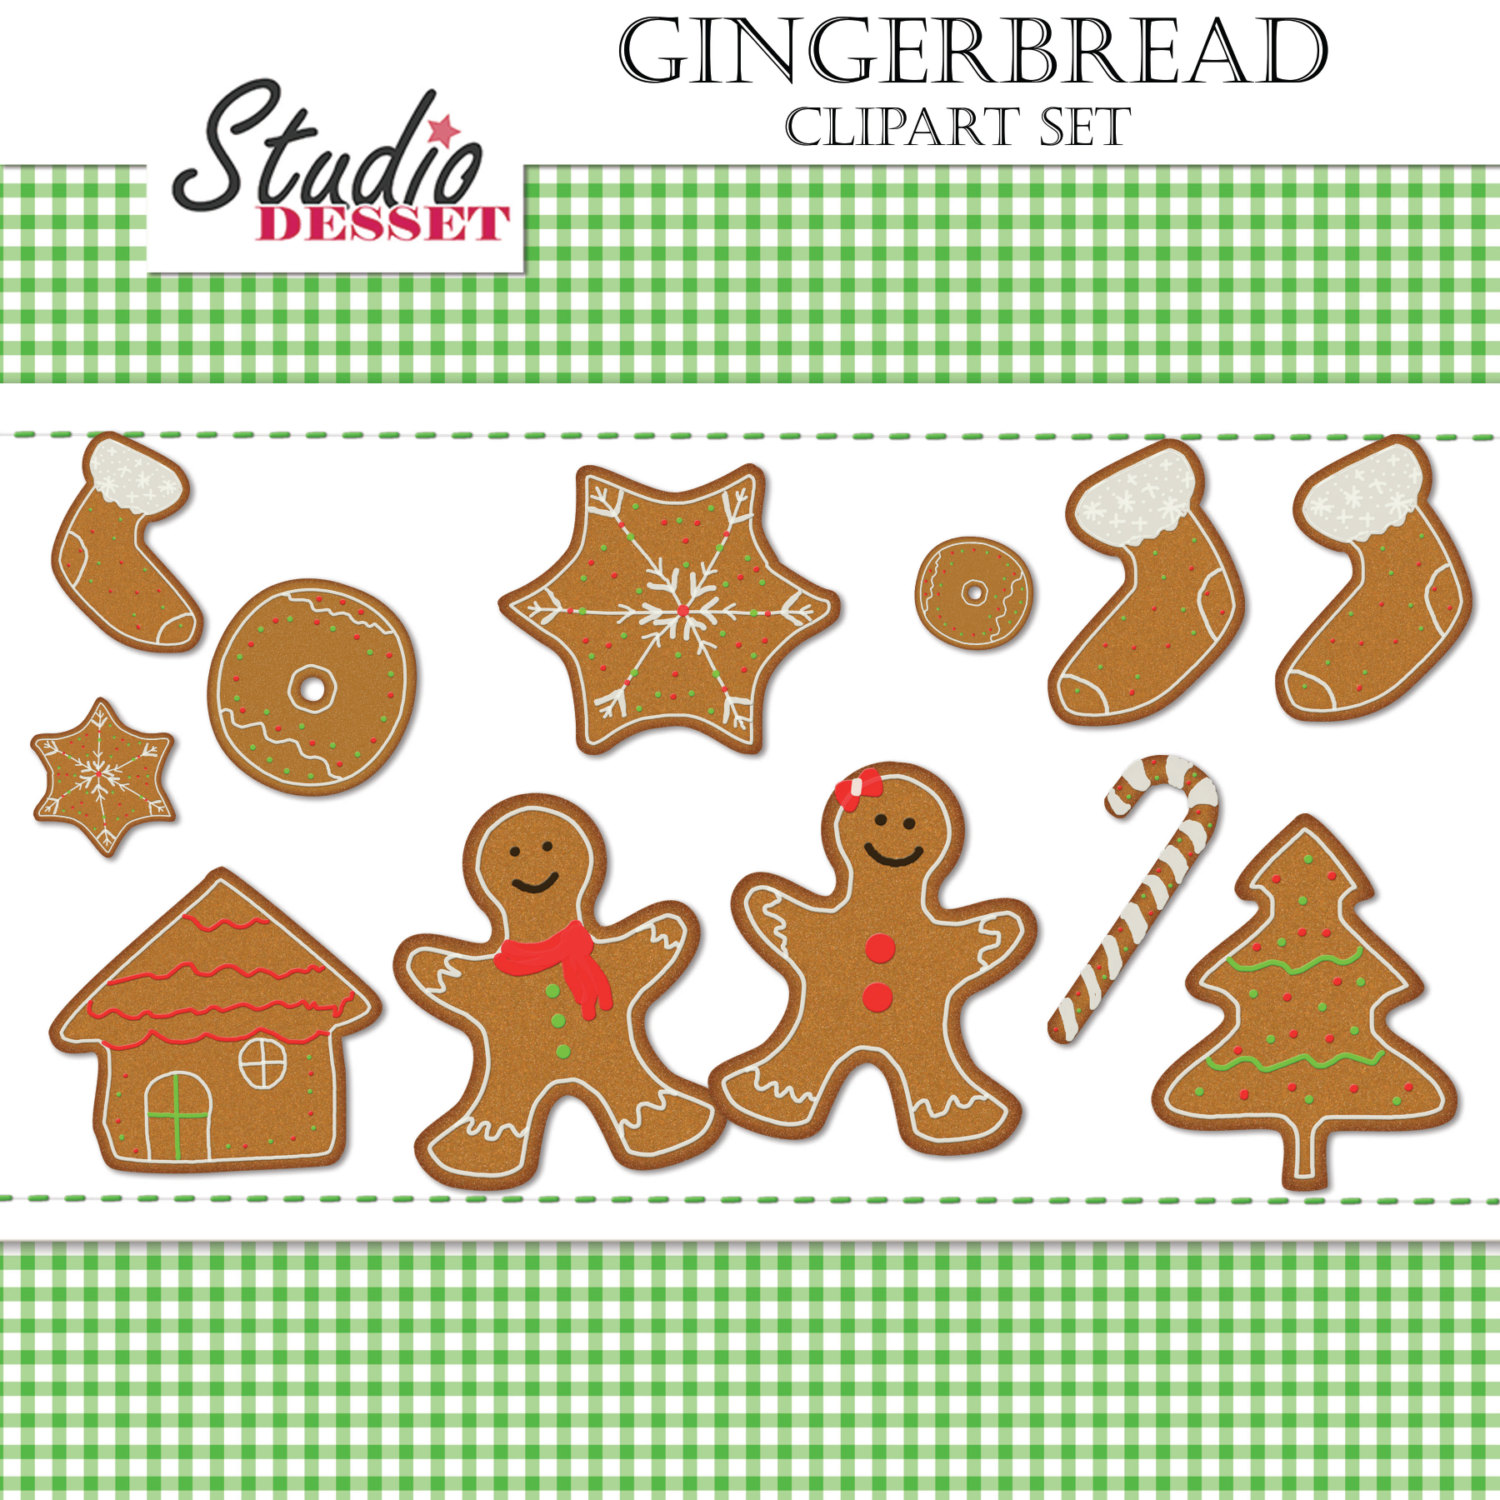 Candy Cane clipart christmas cookie Cane This Gingerbread a Cookie